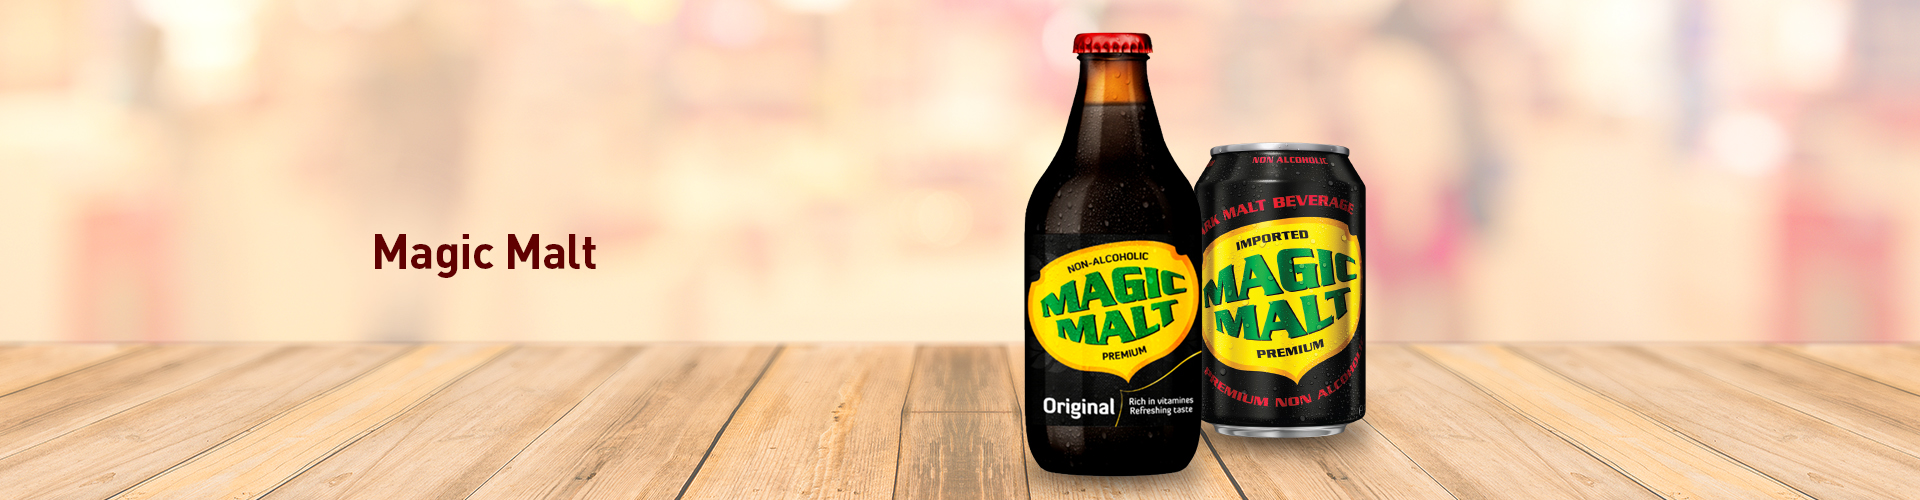 Magic Malt